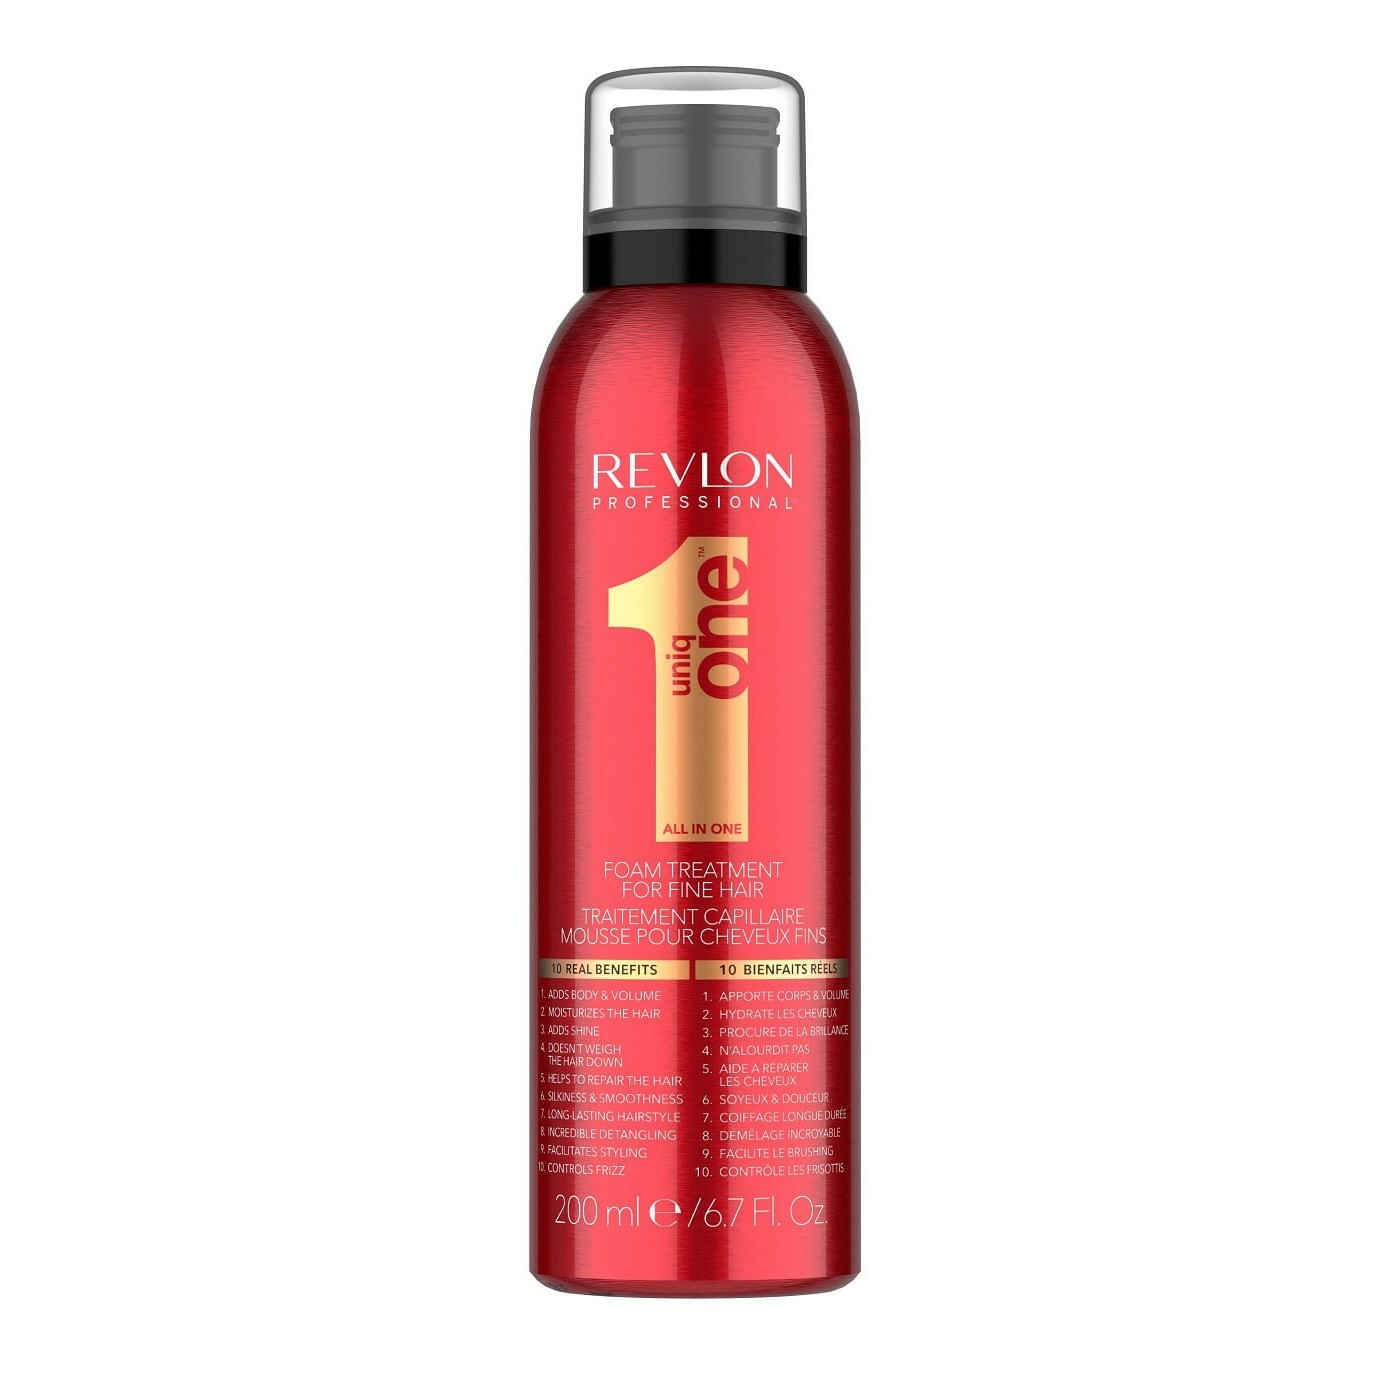 Uniq One Foam Treatment for Fine Hair 200 ml